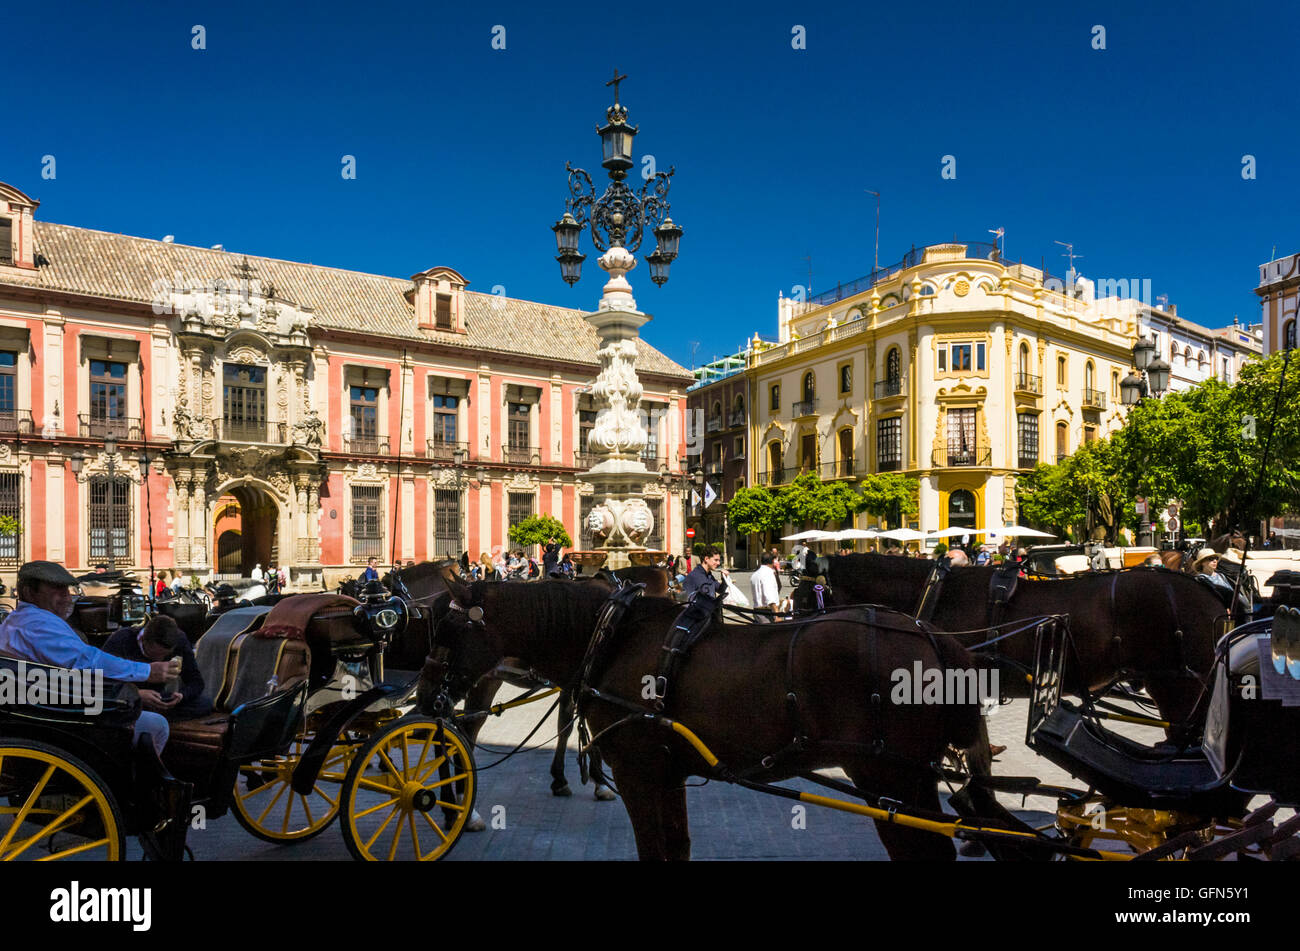 Horse drawn carriages Calle Mateos Gago, Seville, Spain - Stock Image